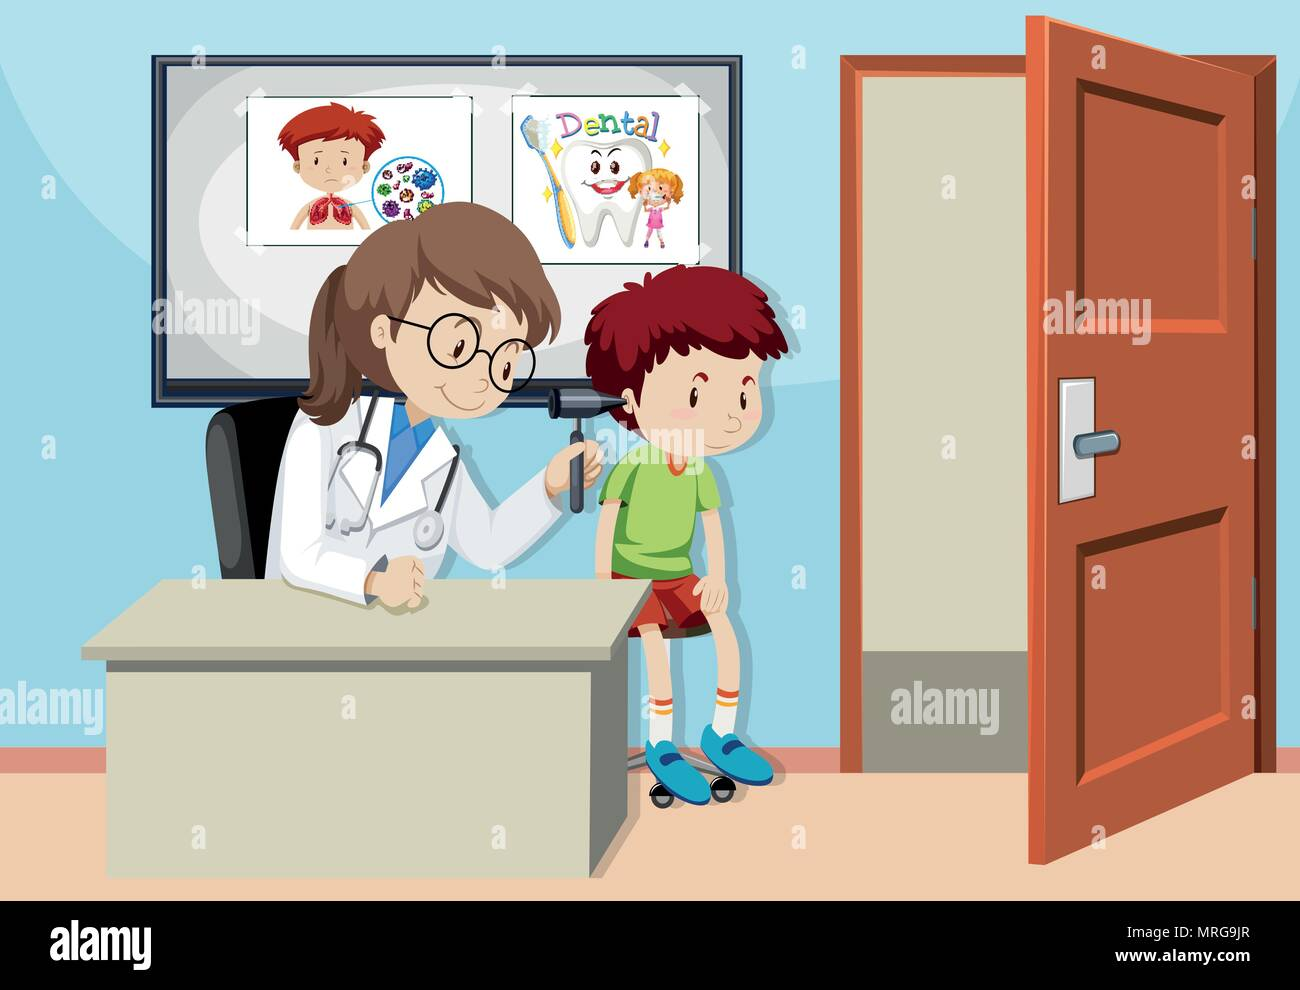 A Kids Checking Ear With Doctor illustration - Stock Image